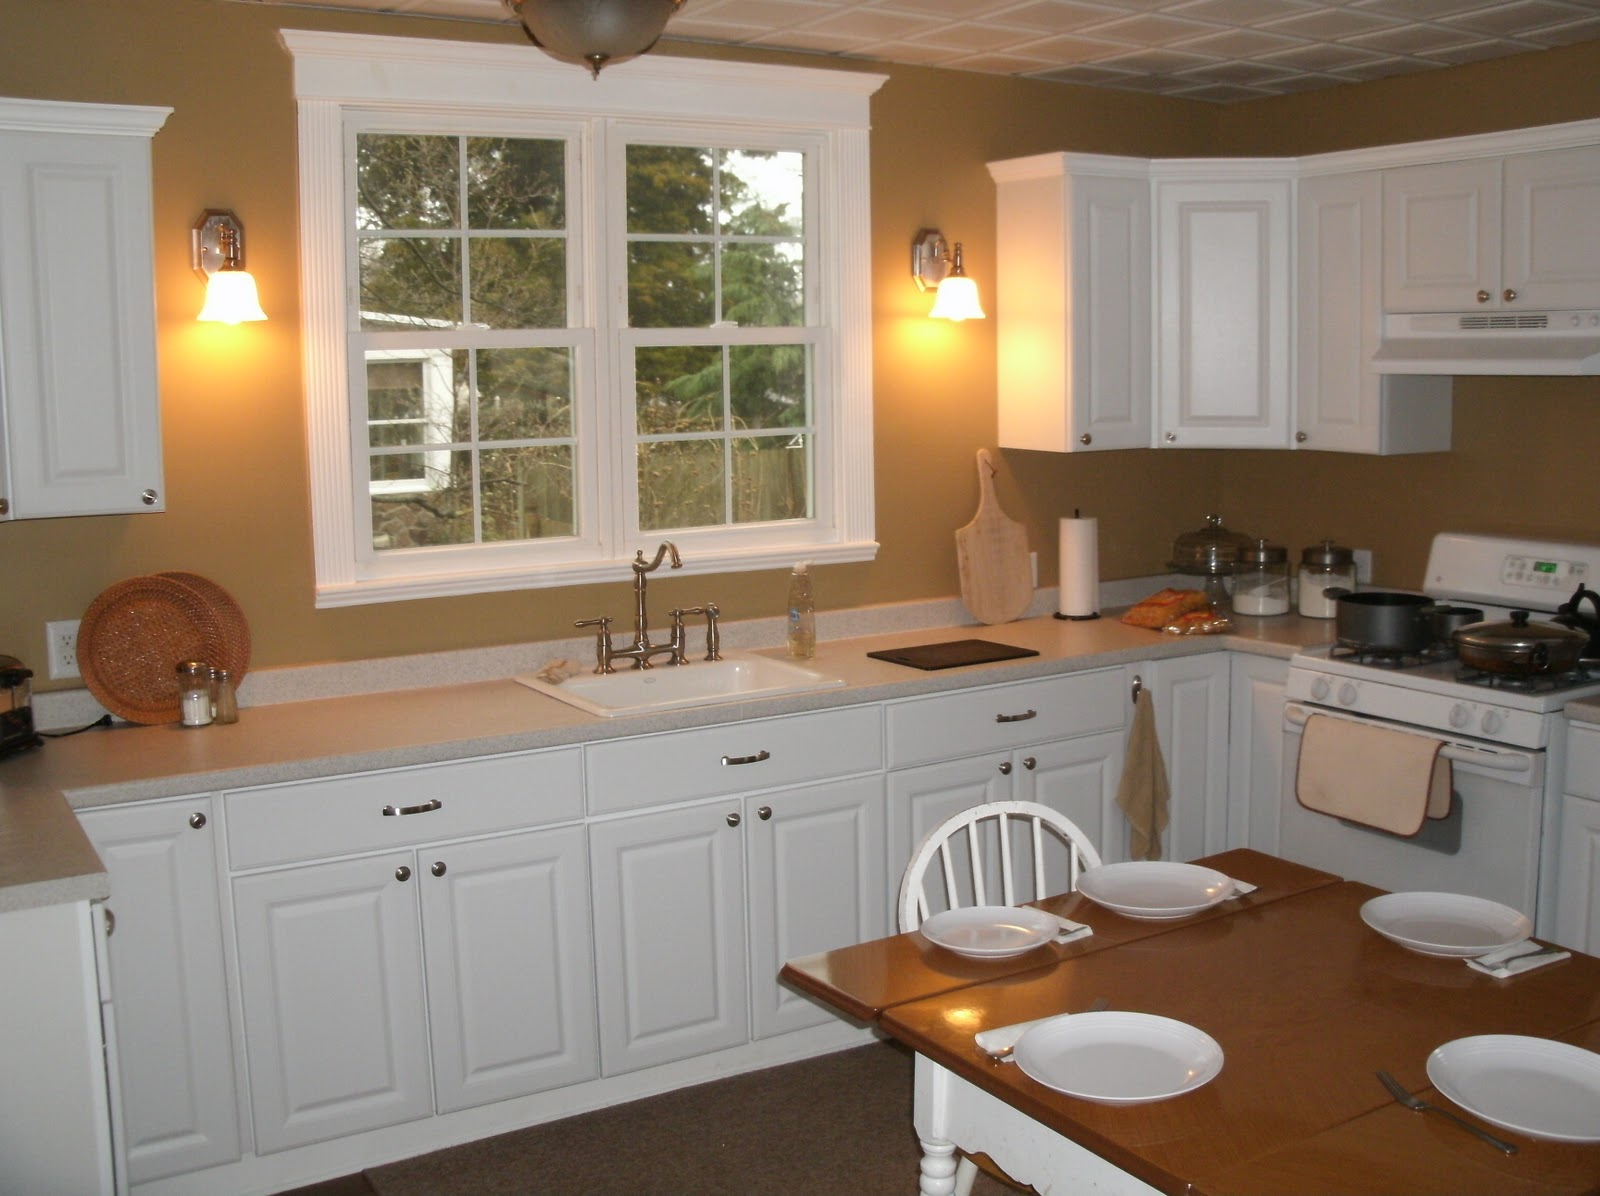 How much to remodel small kitchen - large and beautiful ...